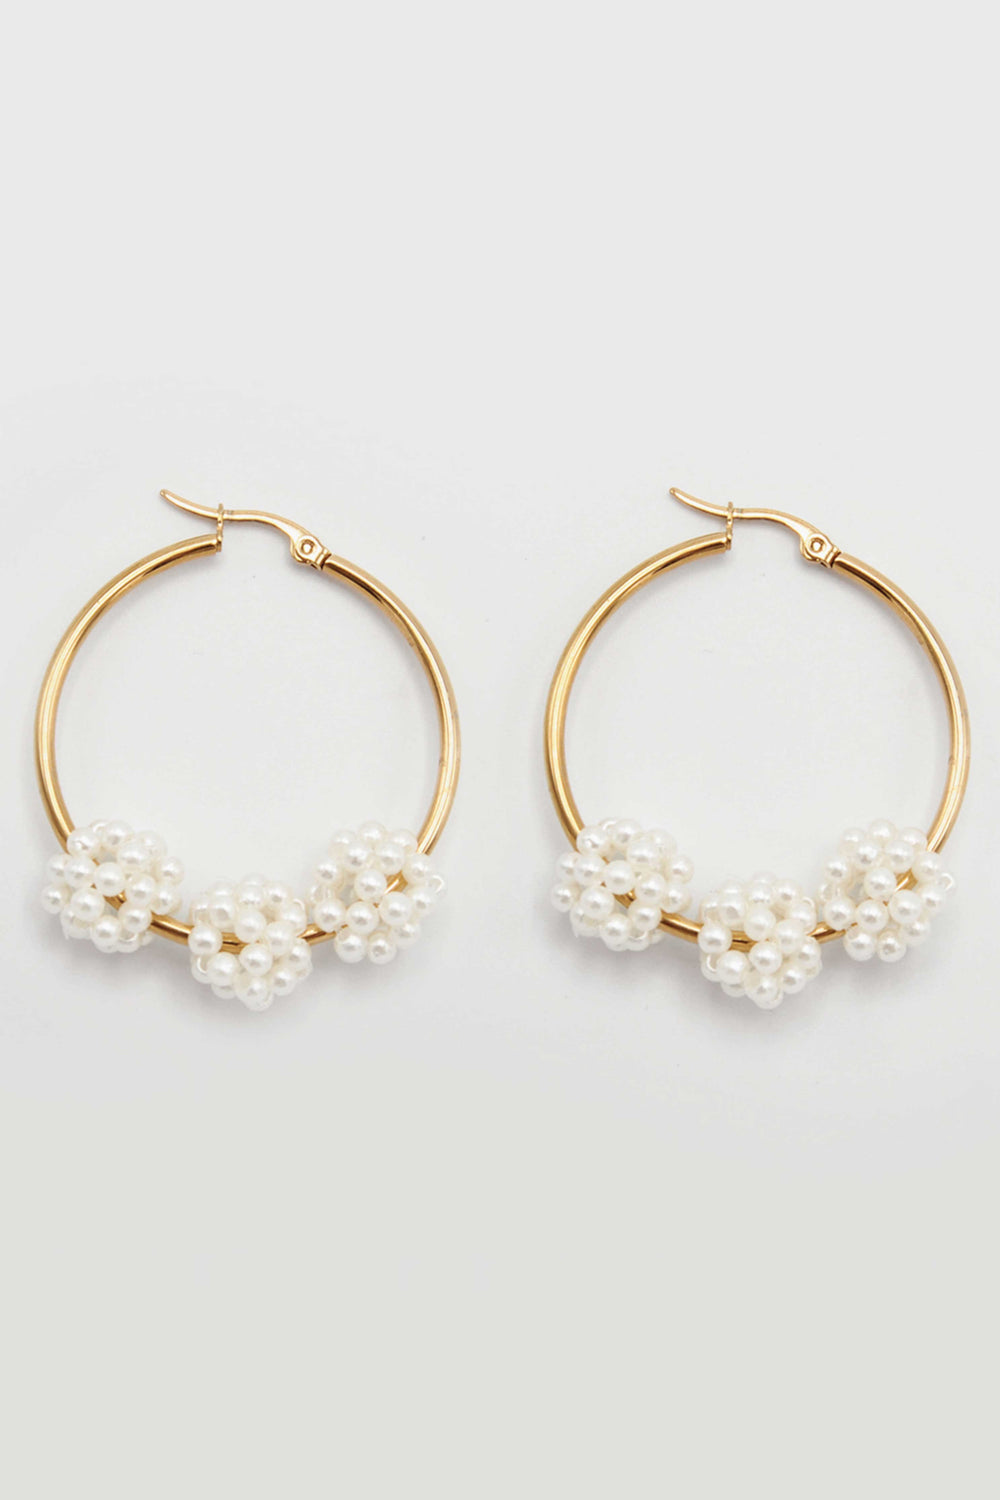 DAY DREAMING EARRINGS | Women's Online Shopping | CHICLEFRIQUE